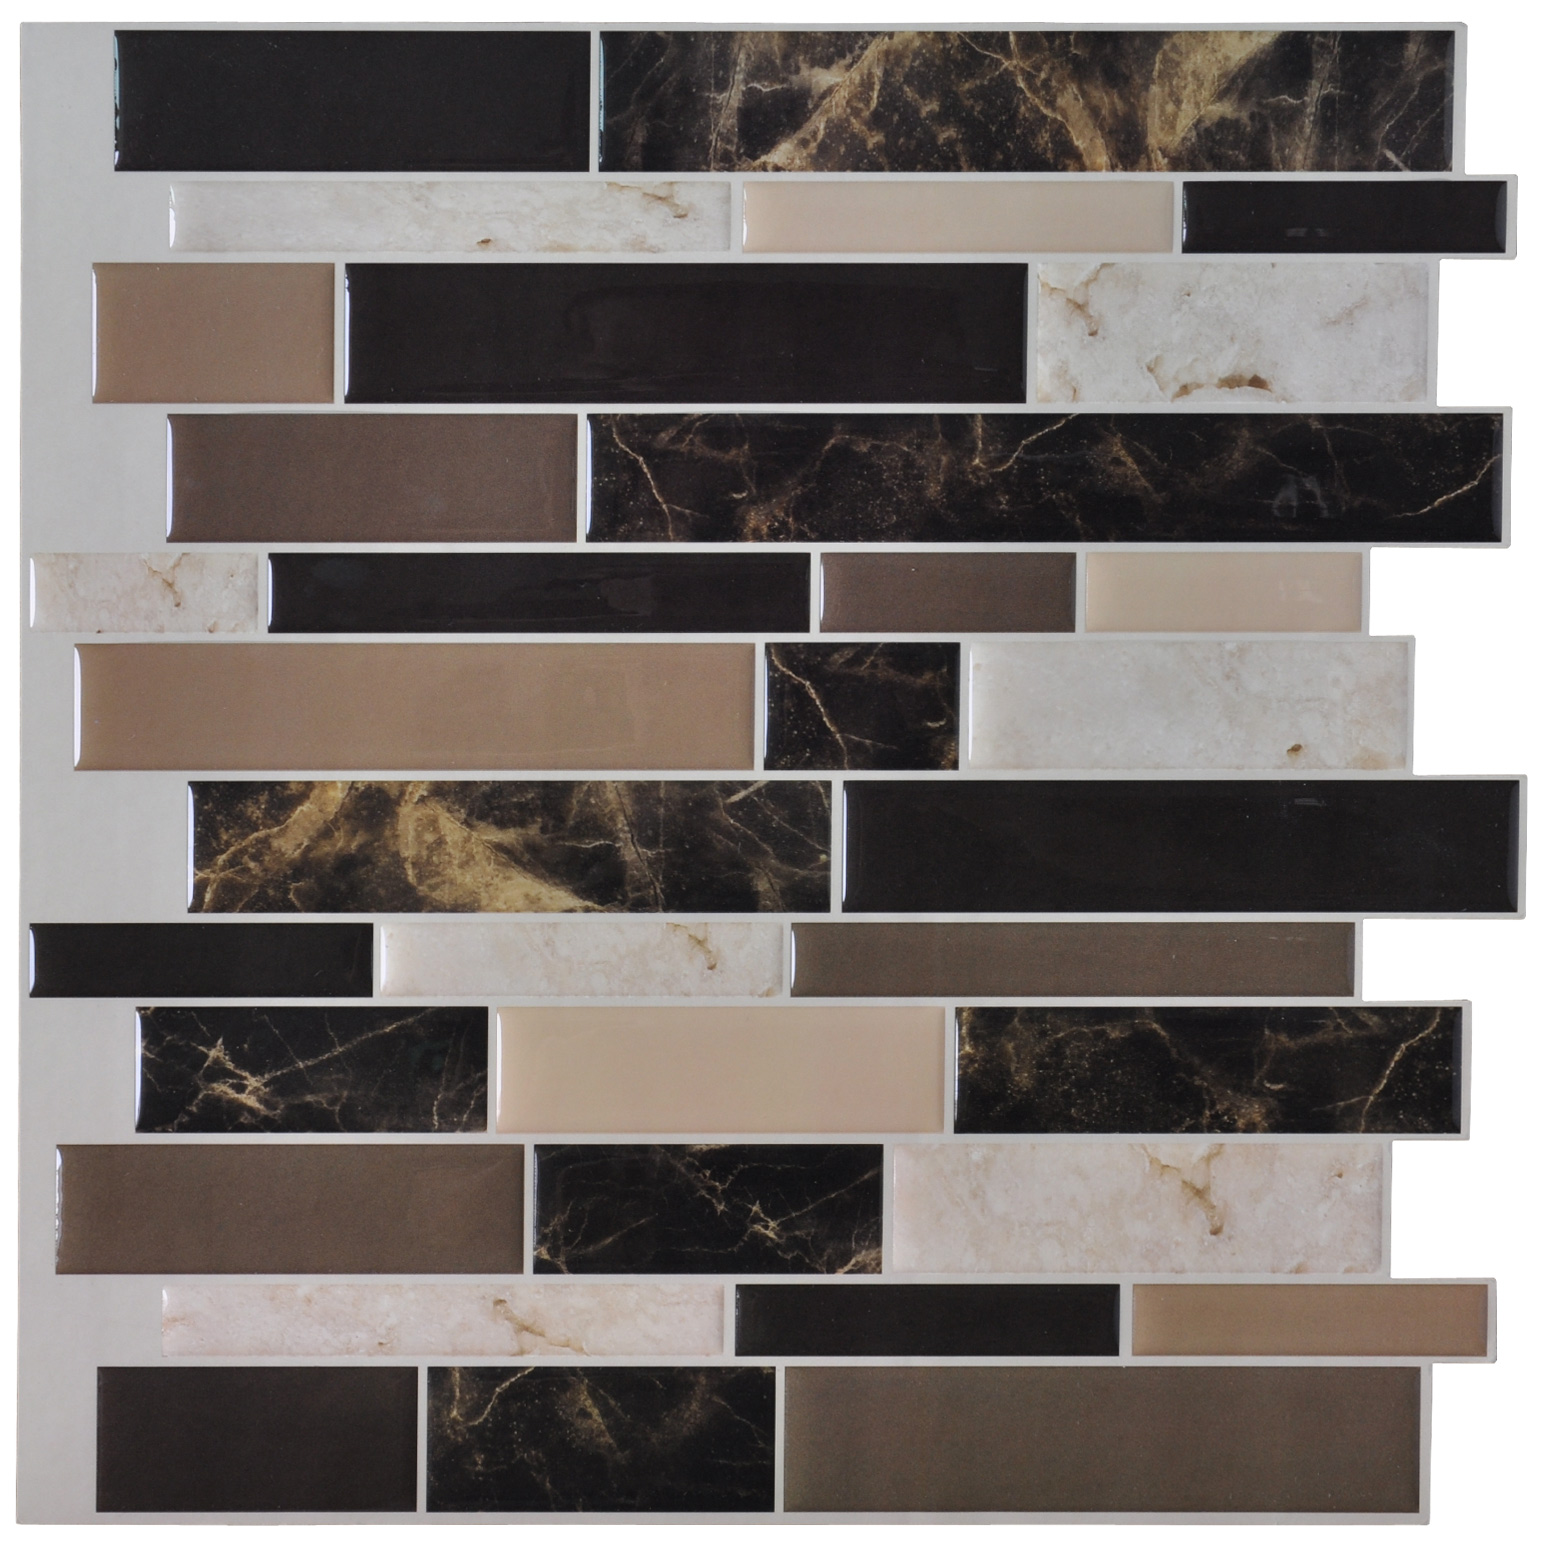 Vinyl Self Adhesive Backsplash Tiles For Kitchen 12x12 Set Of 6